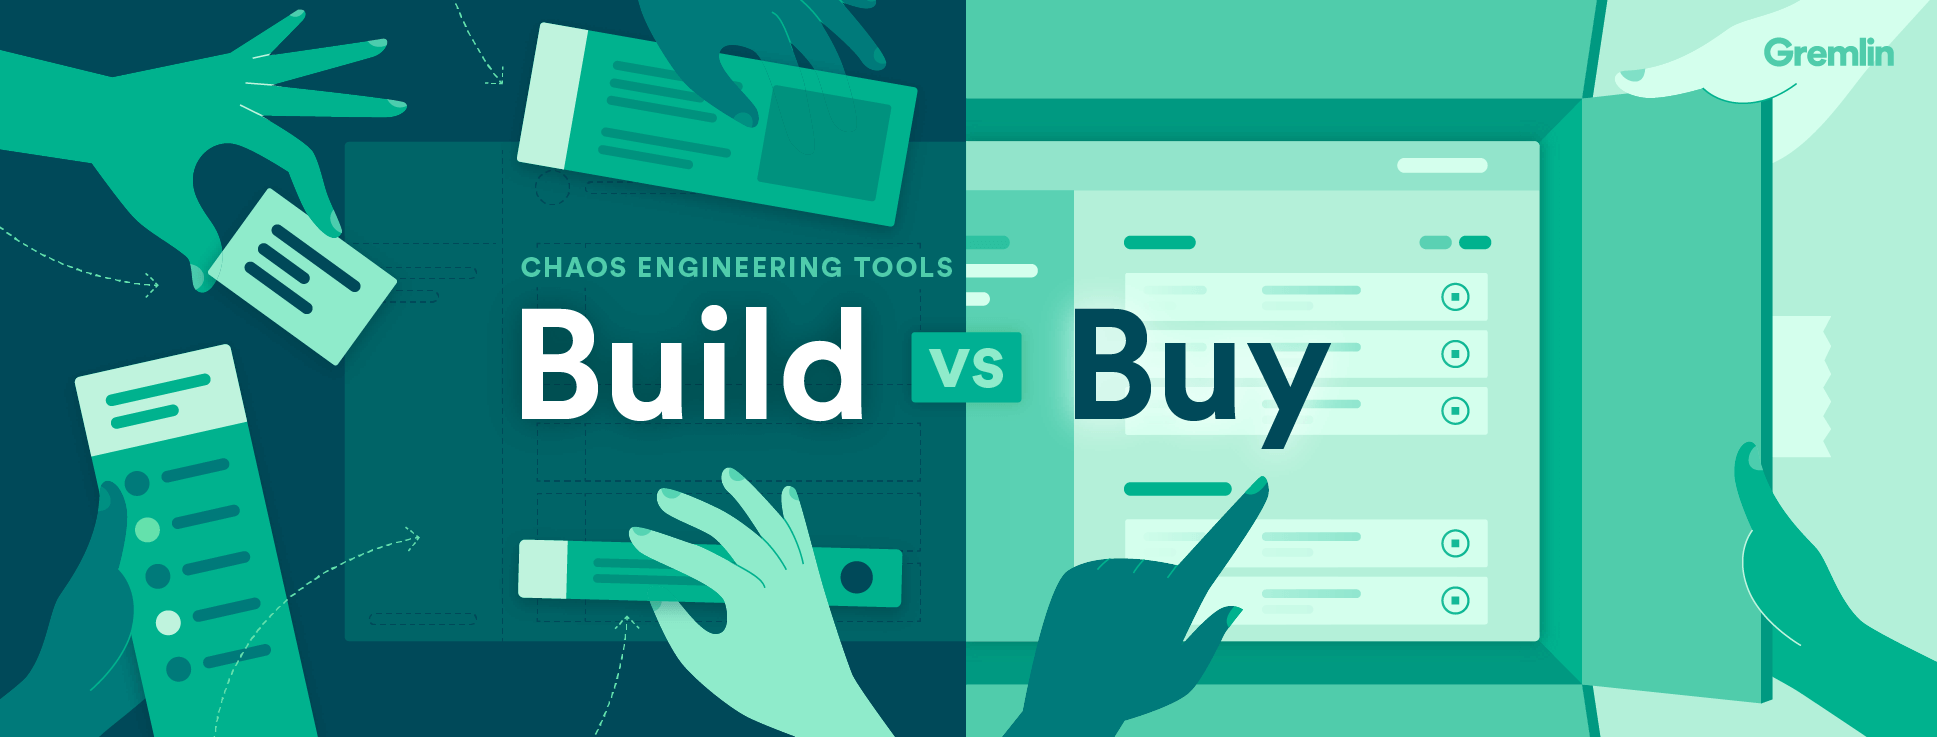 Chaos Engineering Tools: Build vs Buy